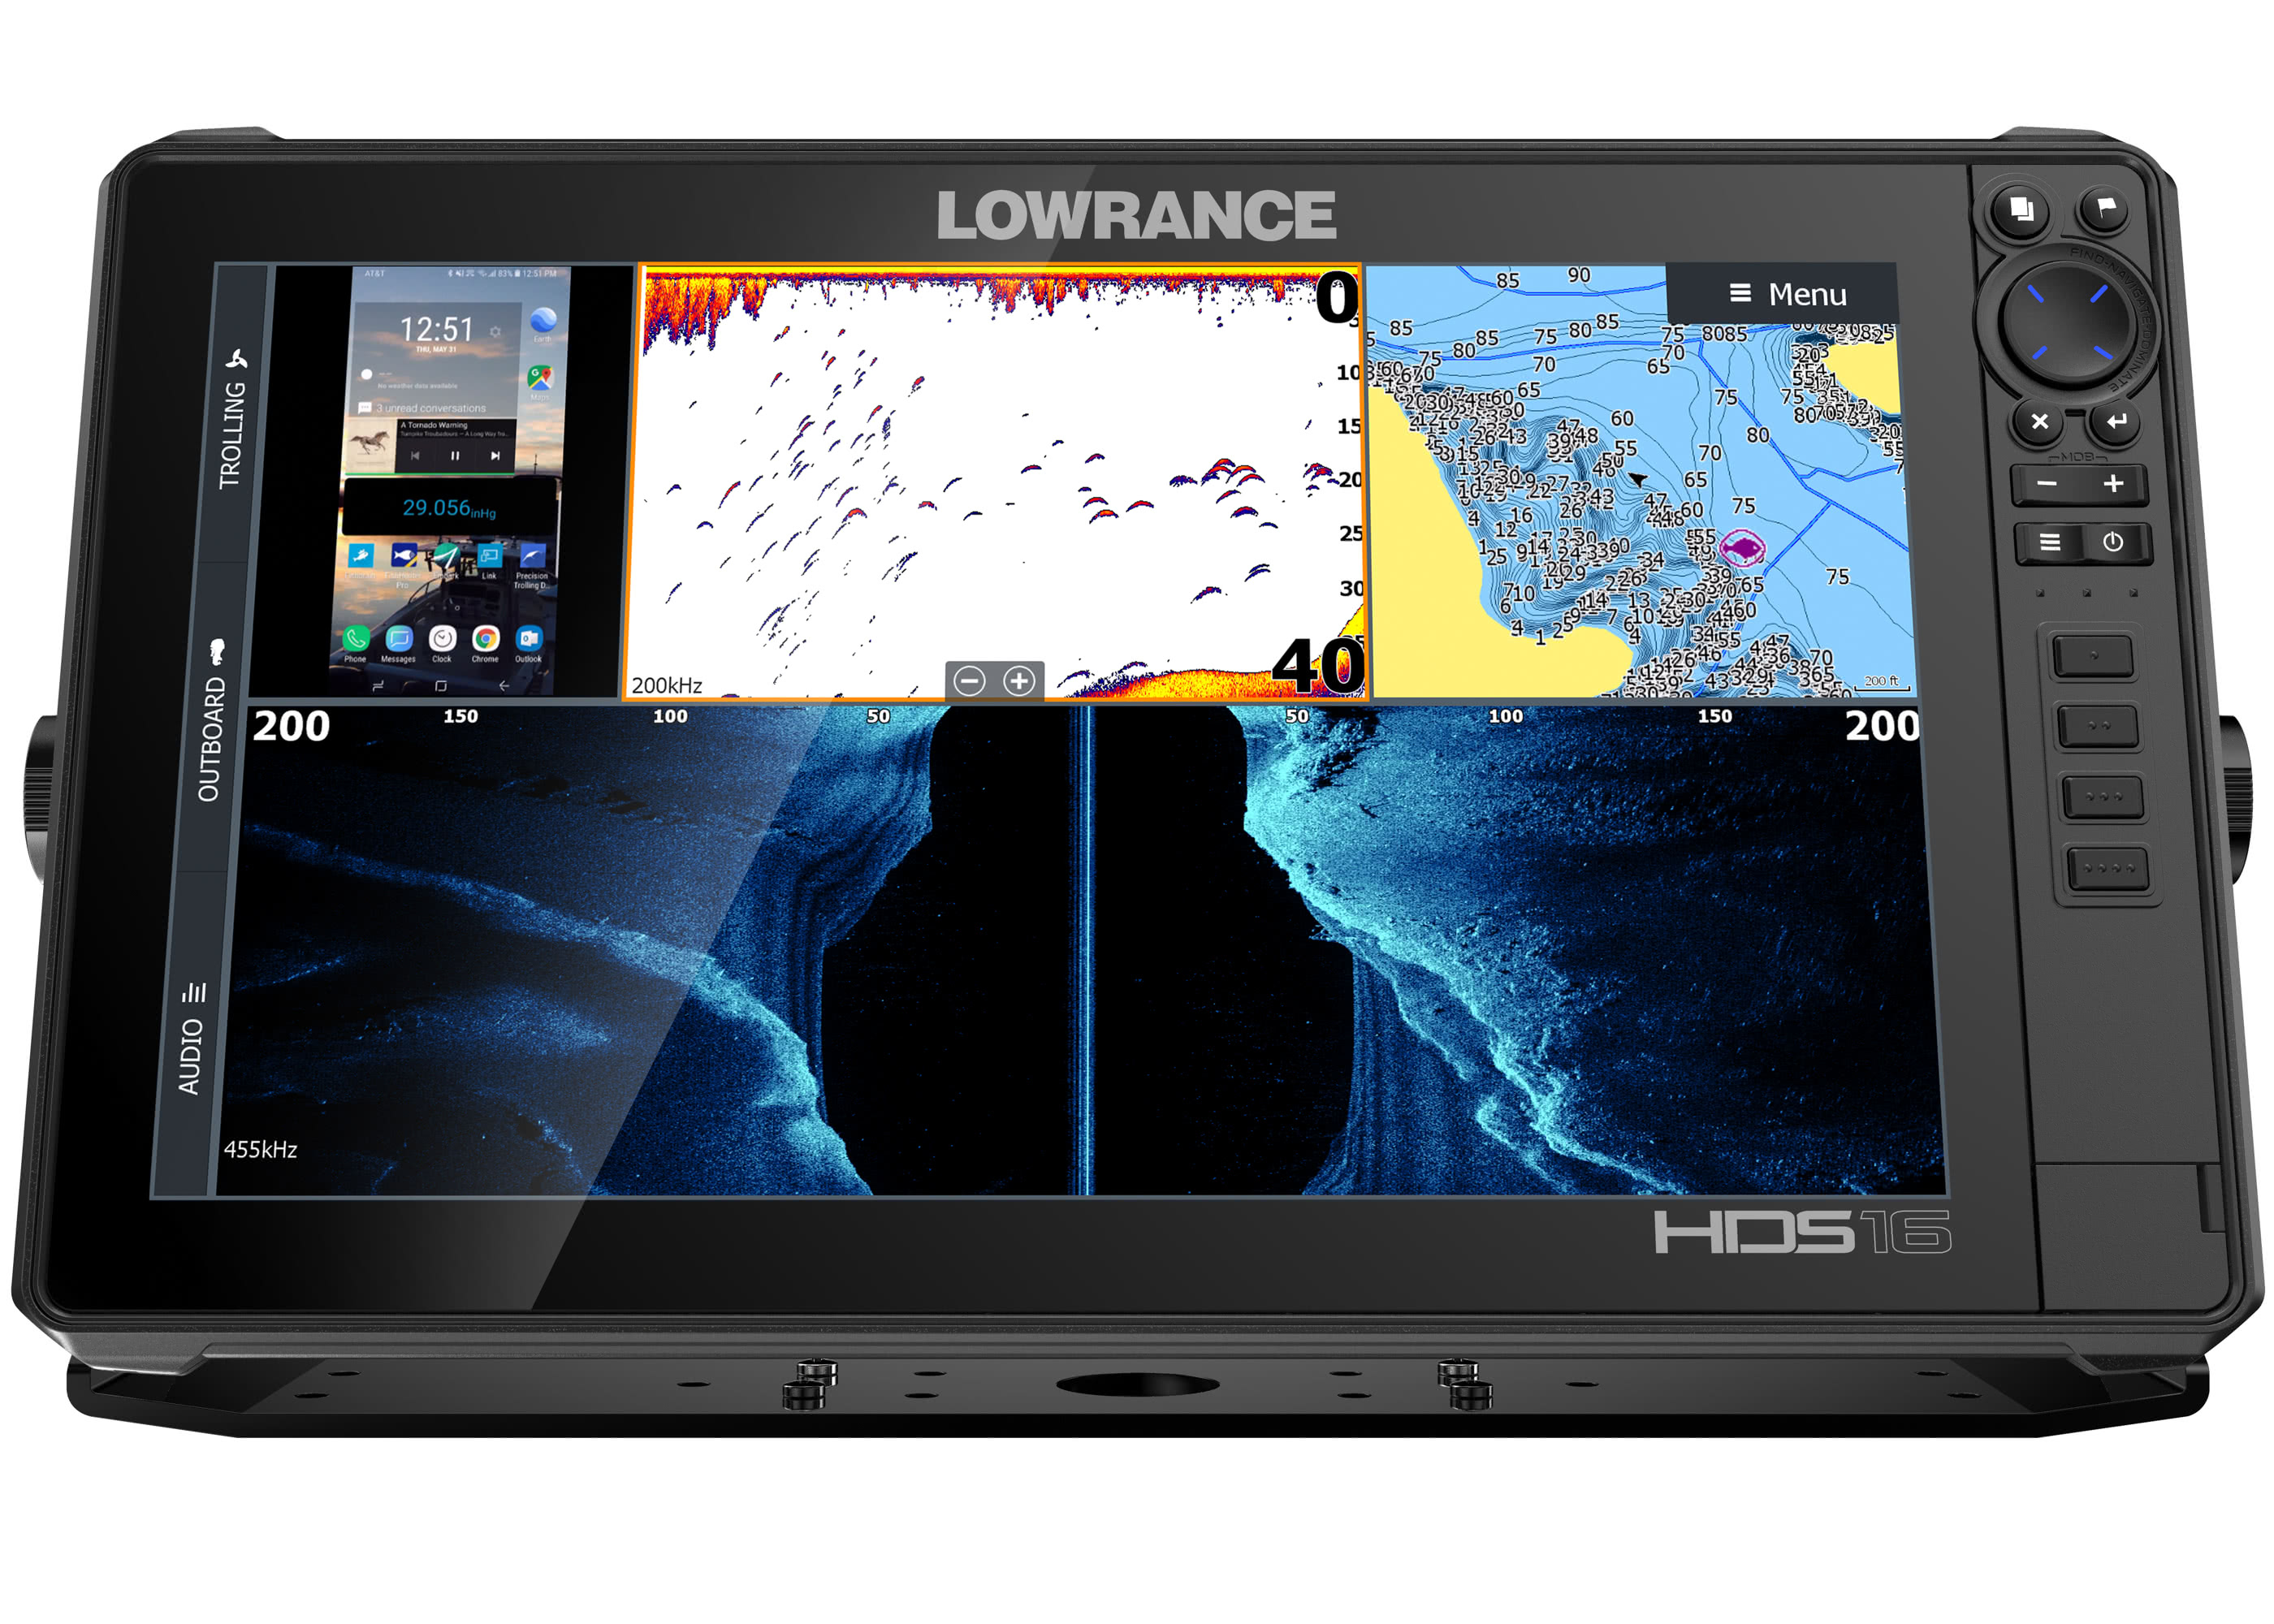 81691_81692_LOWRANCE_HDS-16_Live (7)-Bearbeitet.jpg